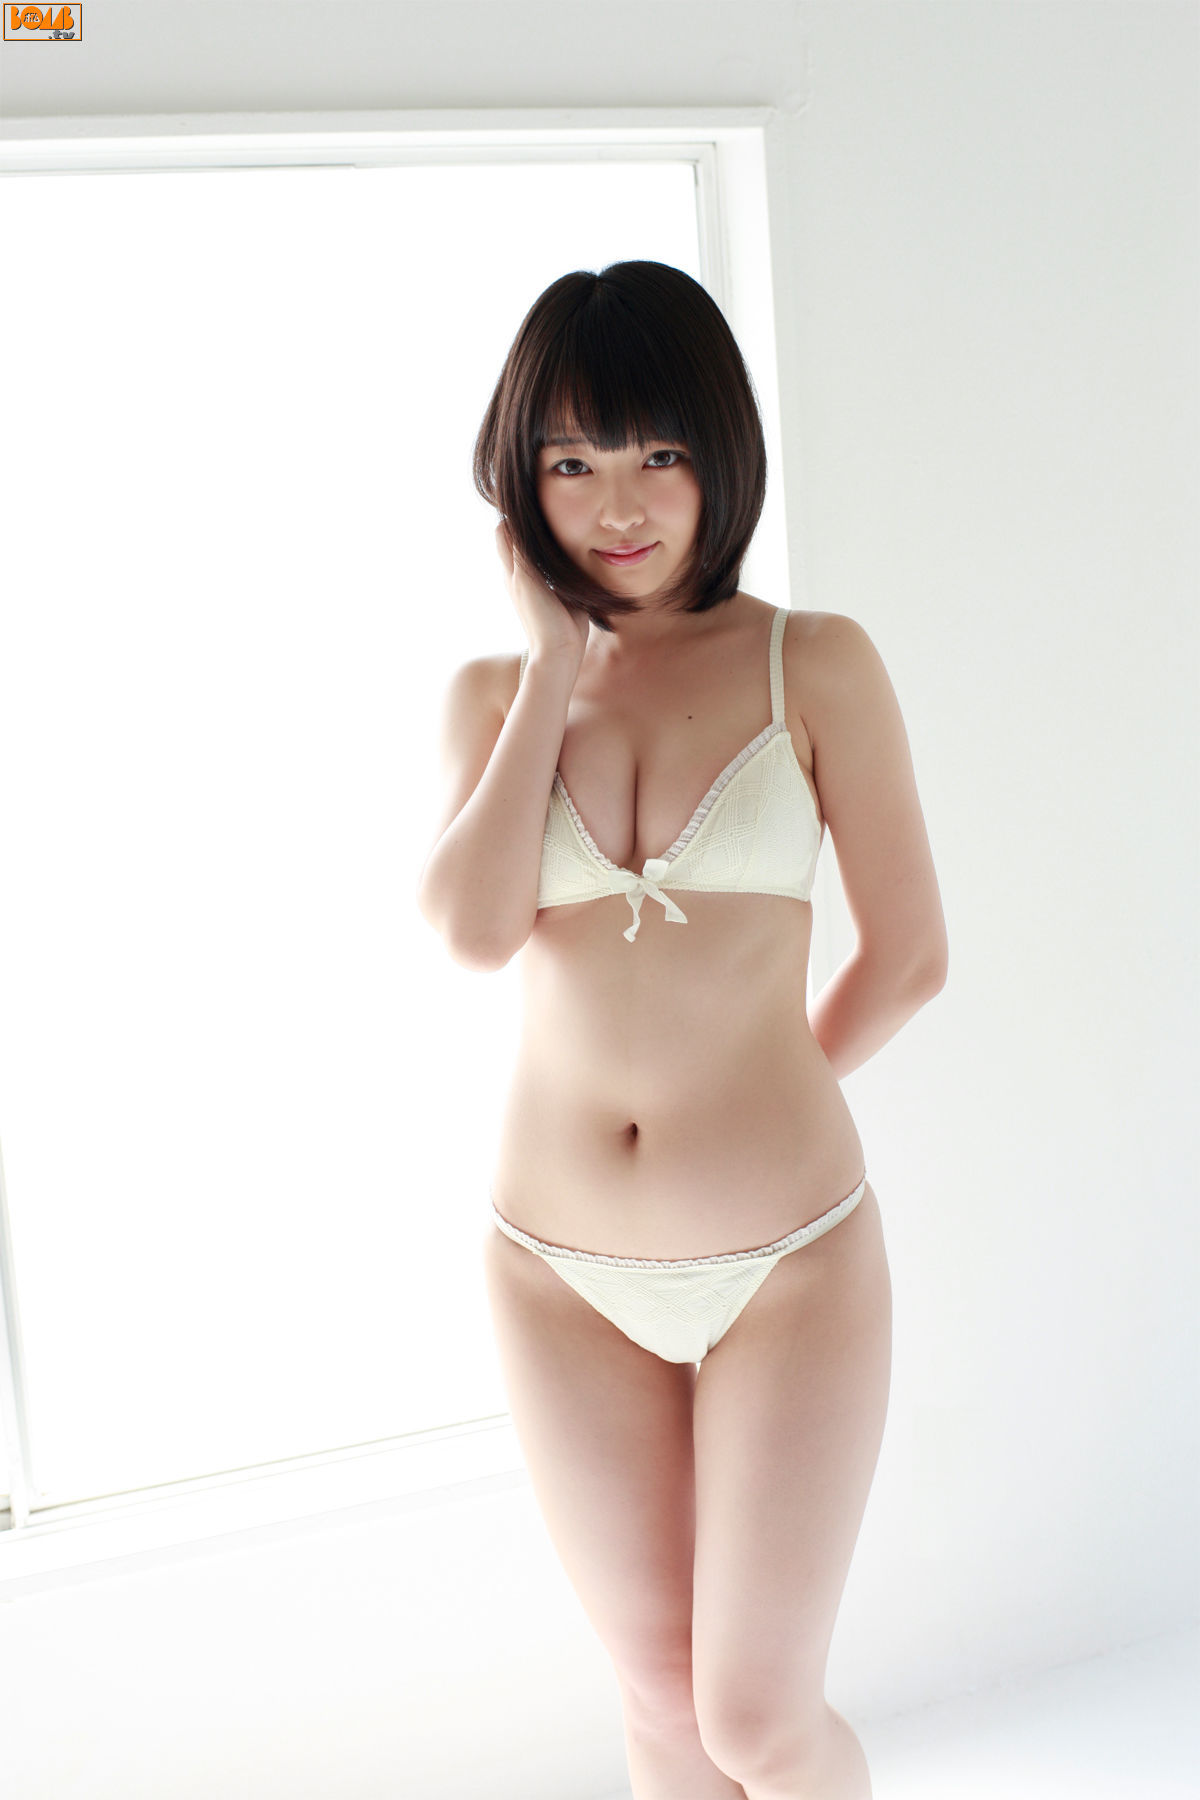 The ultimate swimsuit gravure for the next generation006